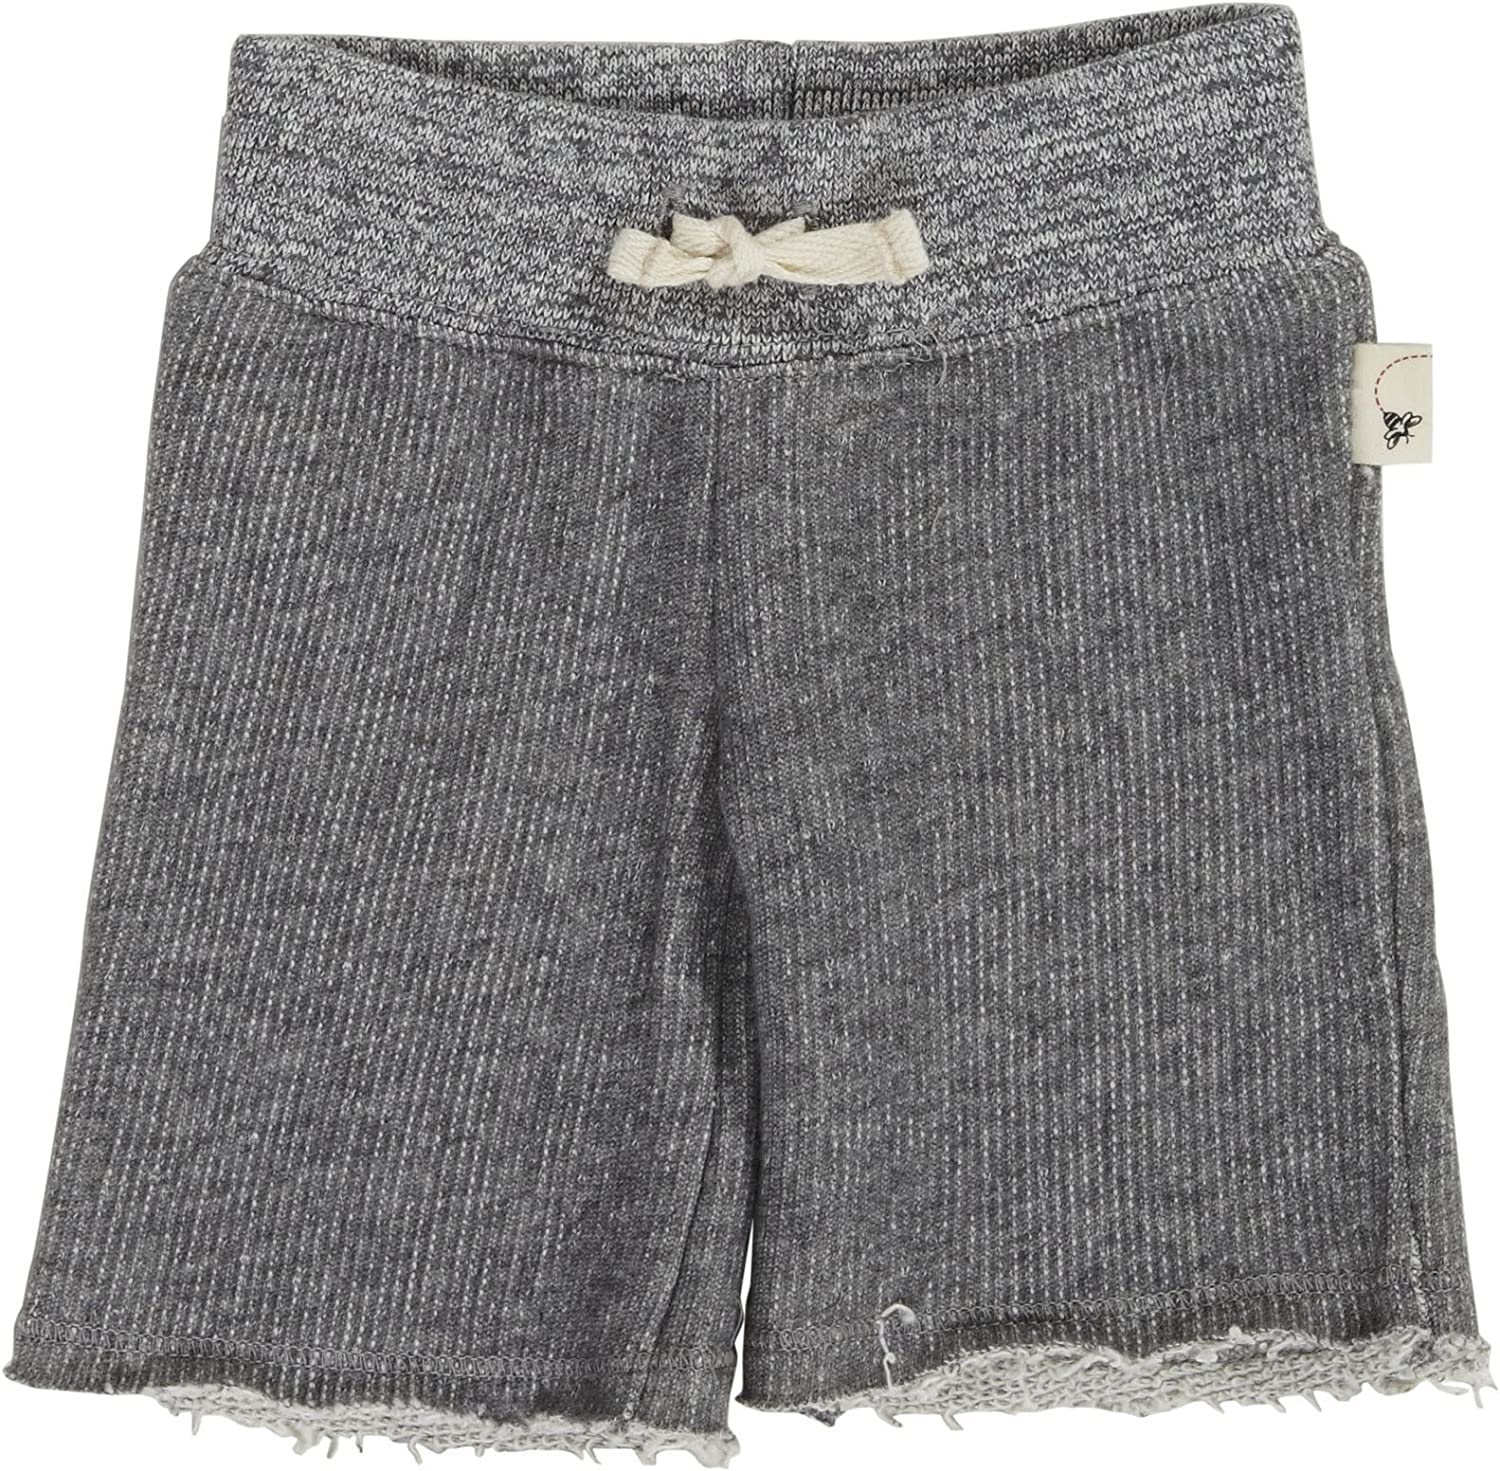 Baby - Gray 0-3 Months Burts Bees Baby Baby Girls Loose Terry Yoga Pants